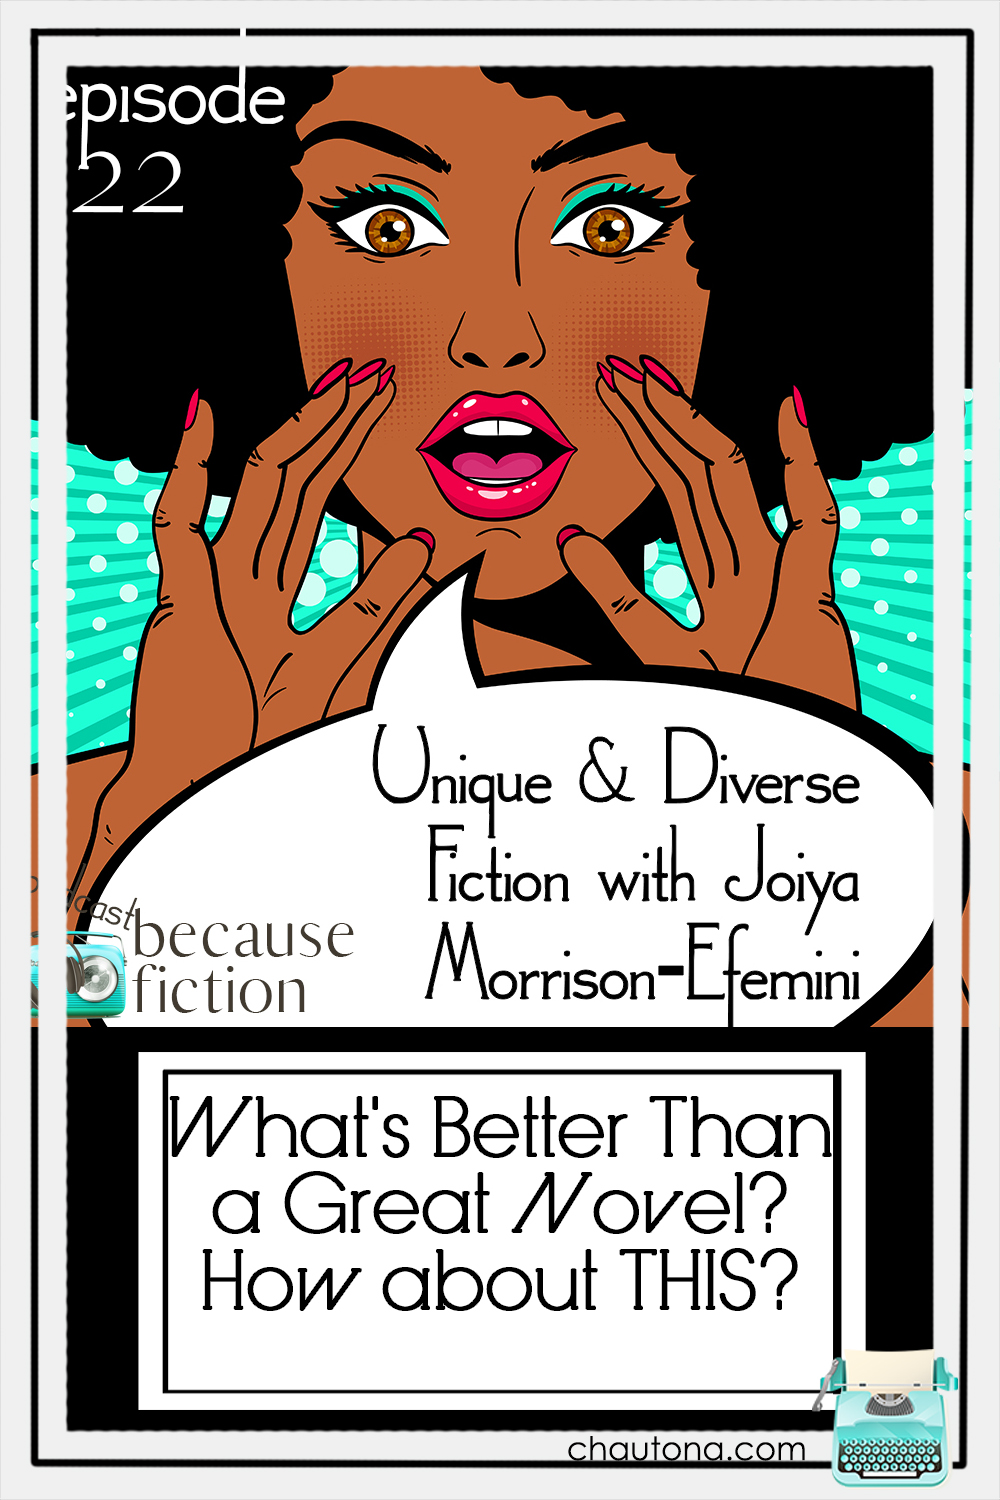 Joiya Morrison-Efemini and I talk about writing dreams, styles, and habits, and also diverse fiction, recommended books, and her new release, Petrified Flowers via @chautonahavig